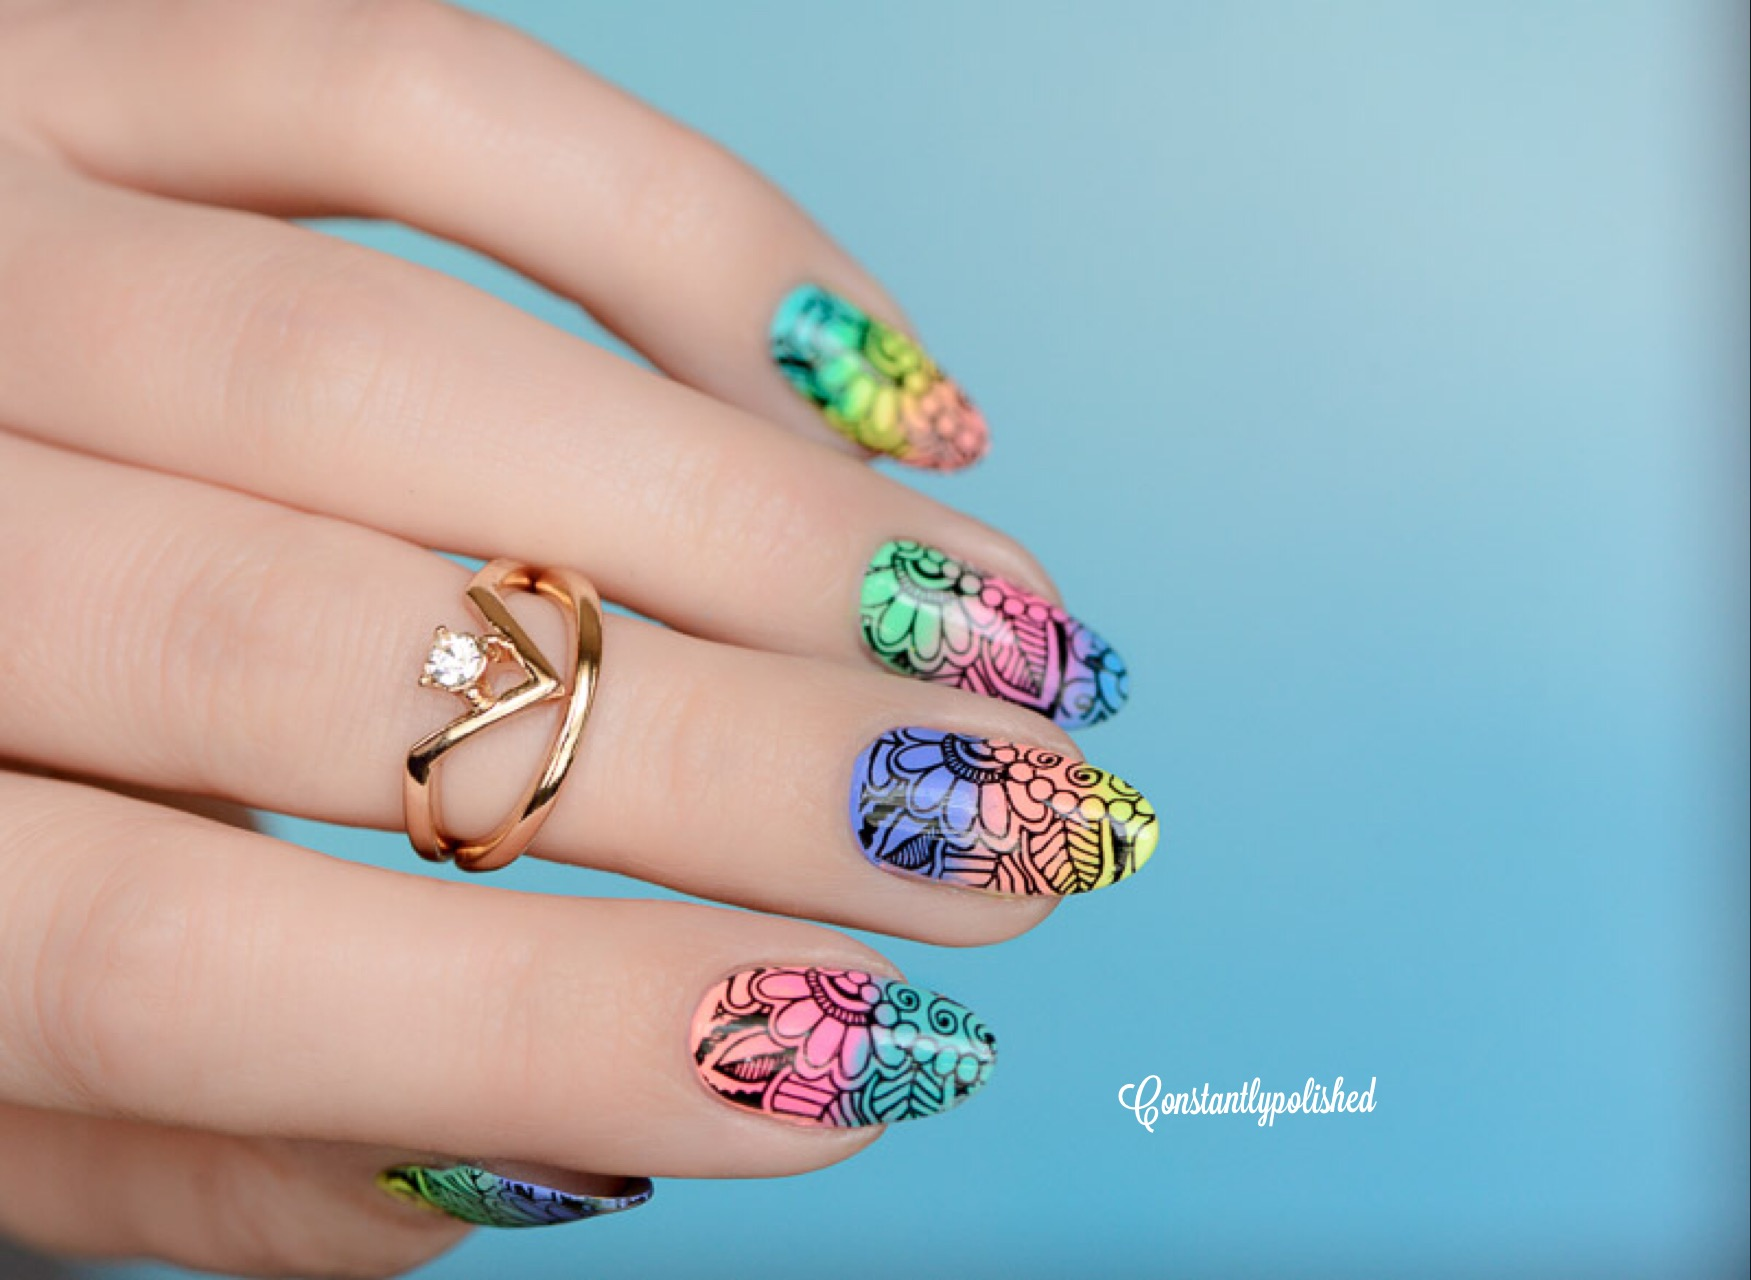 Nails of the Day: Floral dreamworld